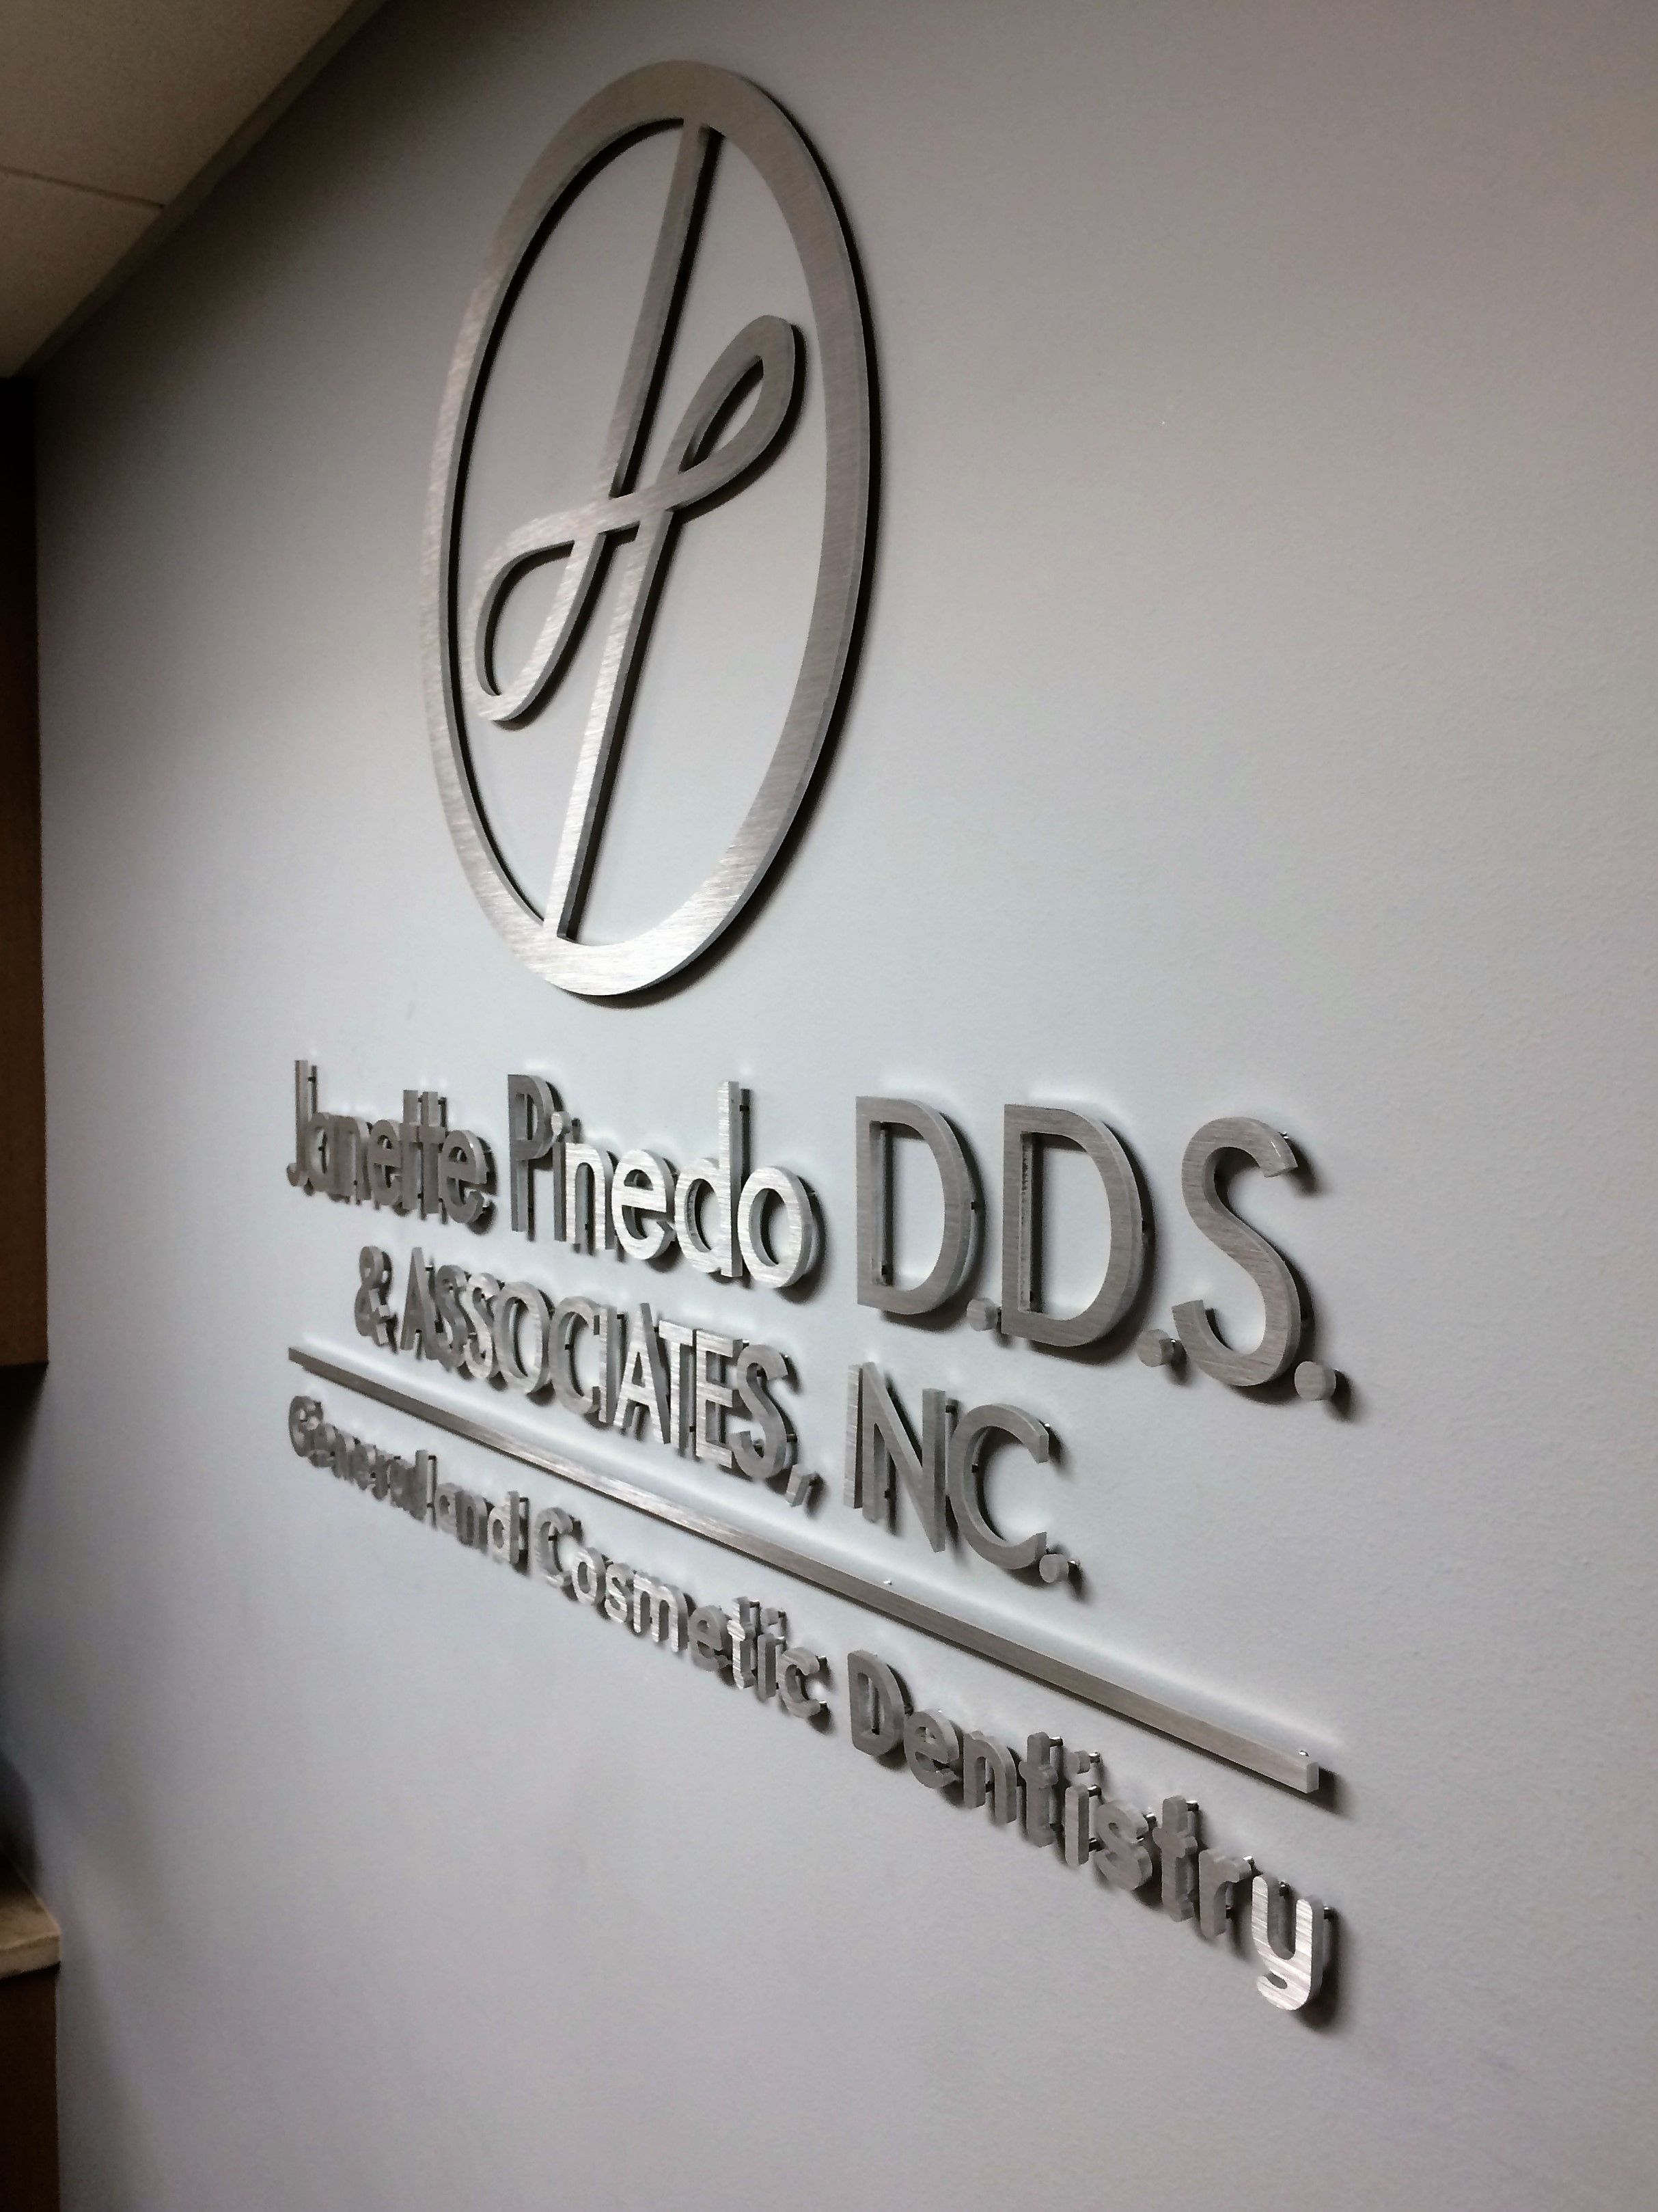 This Is A Dimensional Letter Lobby Sign That We Made By Routing